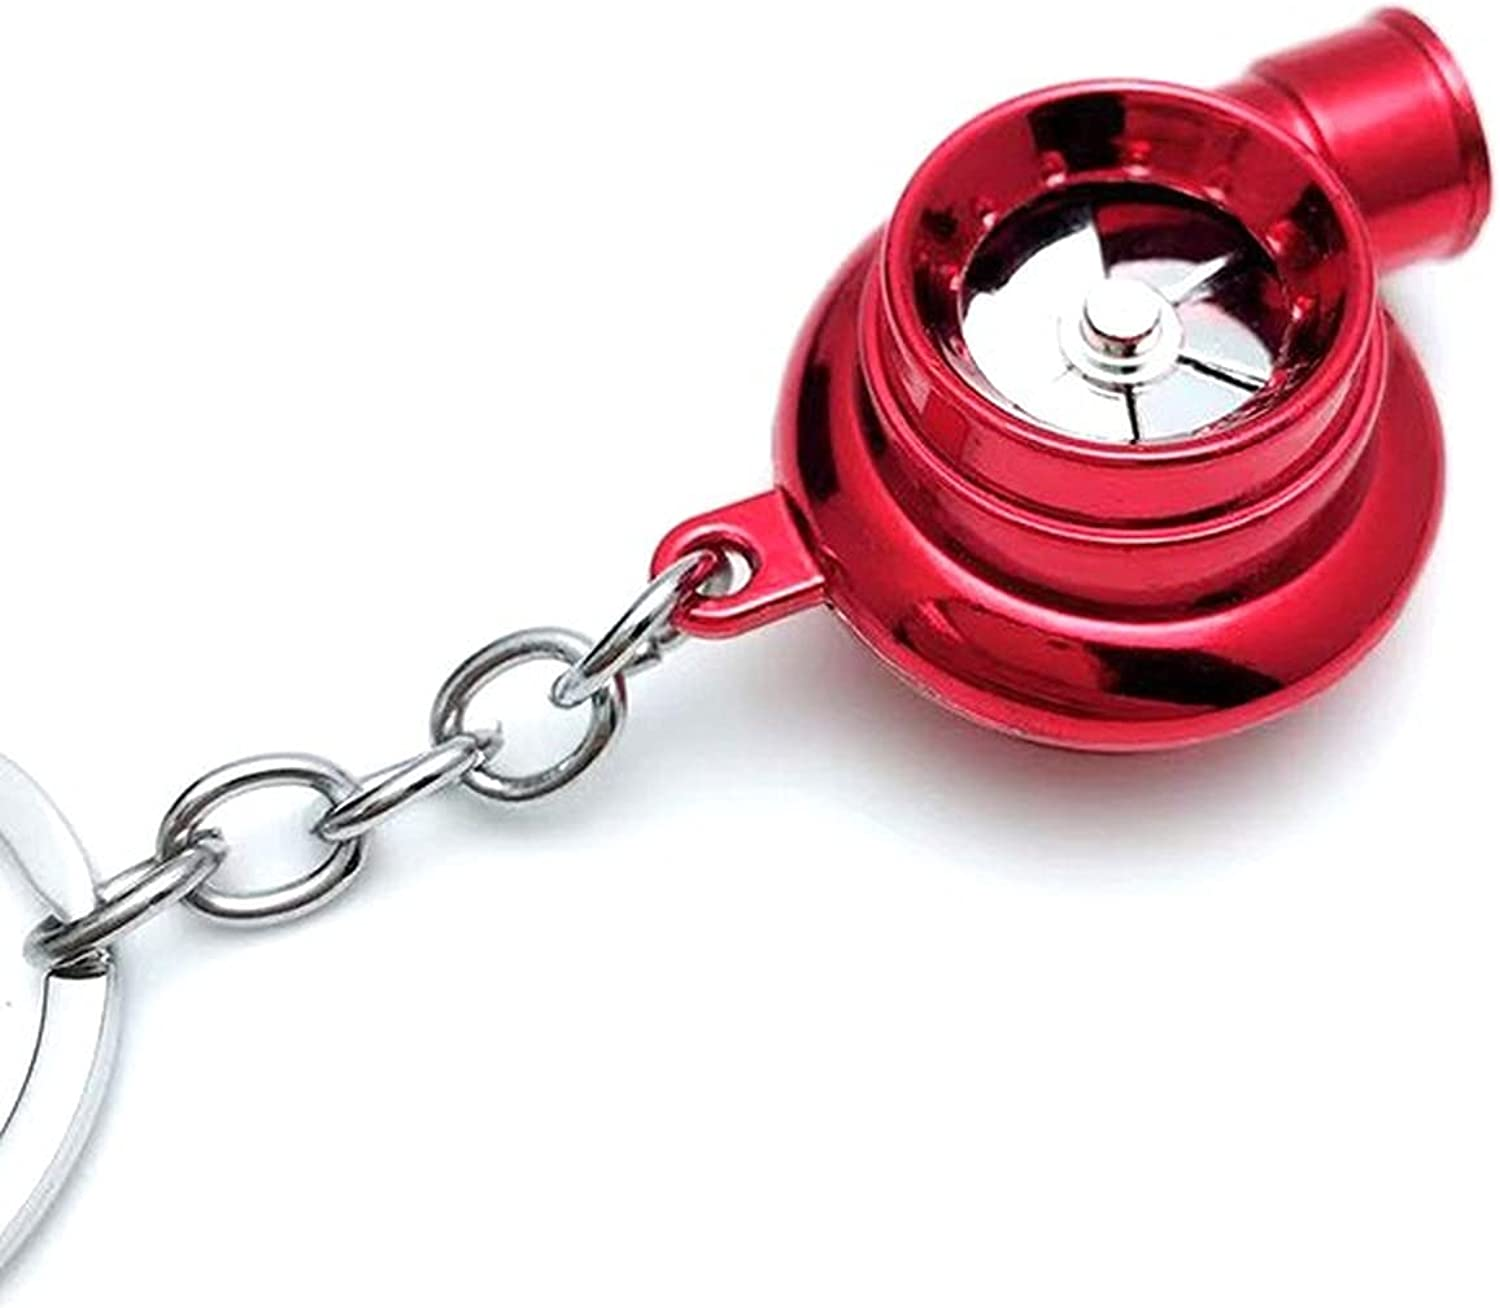 LHX Electronic Gifts Turbo Keychain with Sounds and f small LED gifts San Francisco Mall